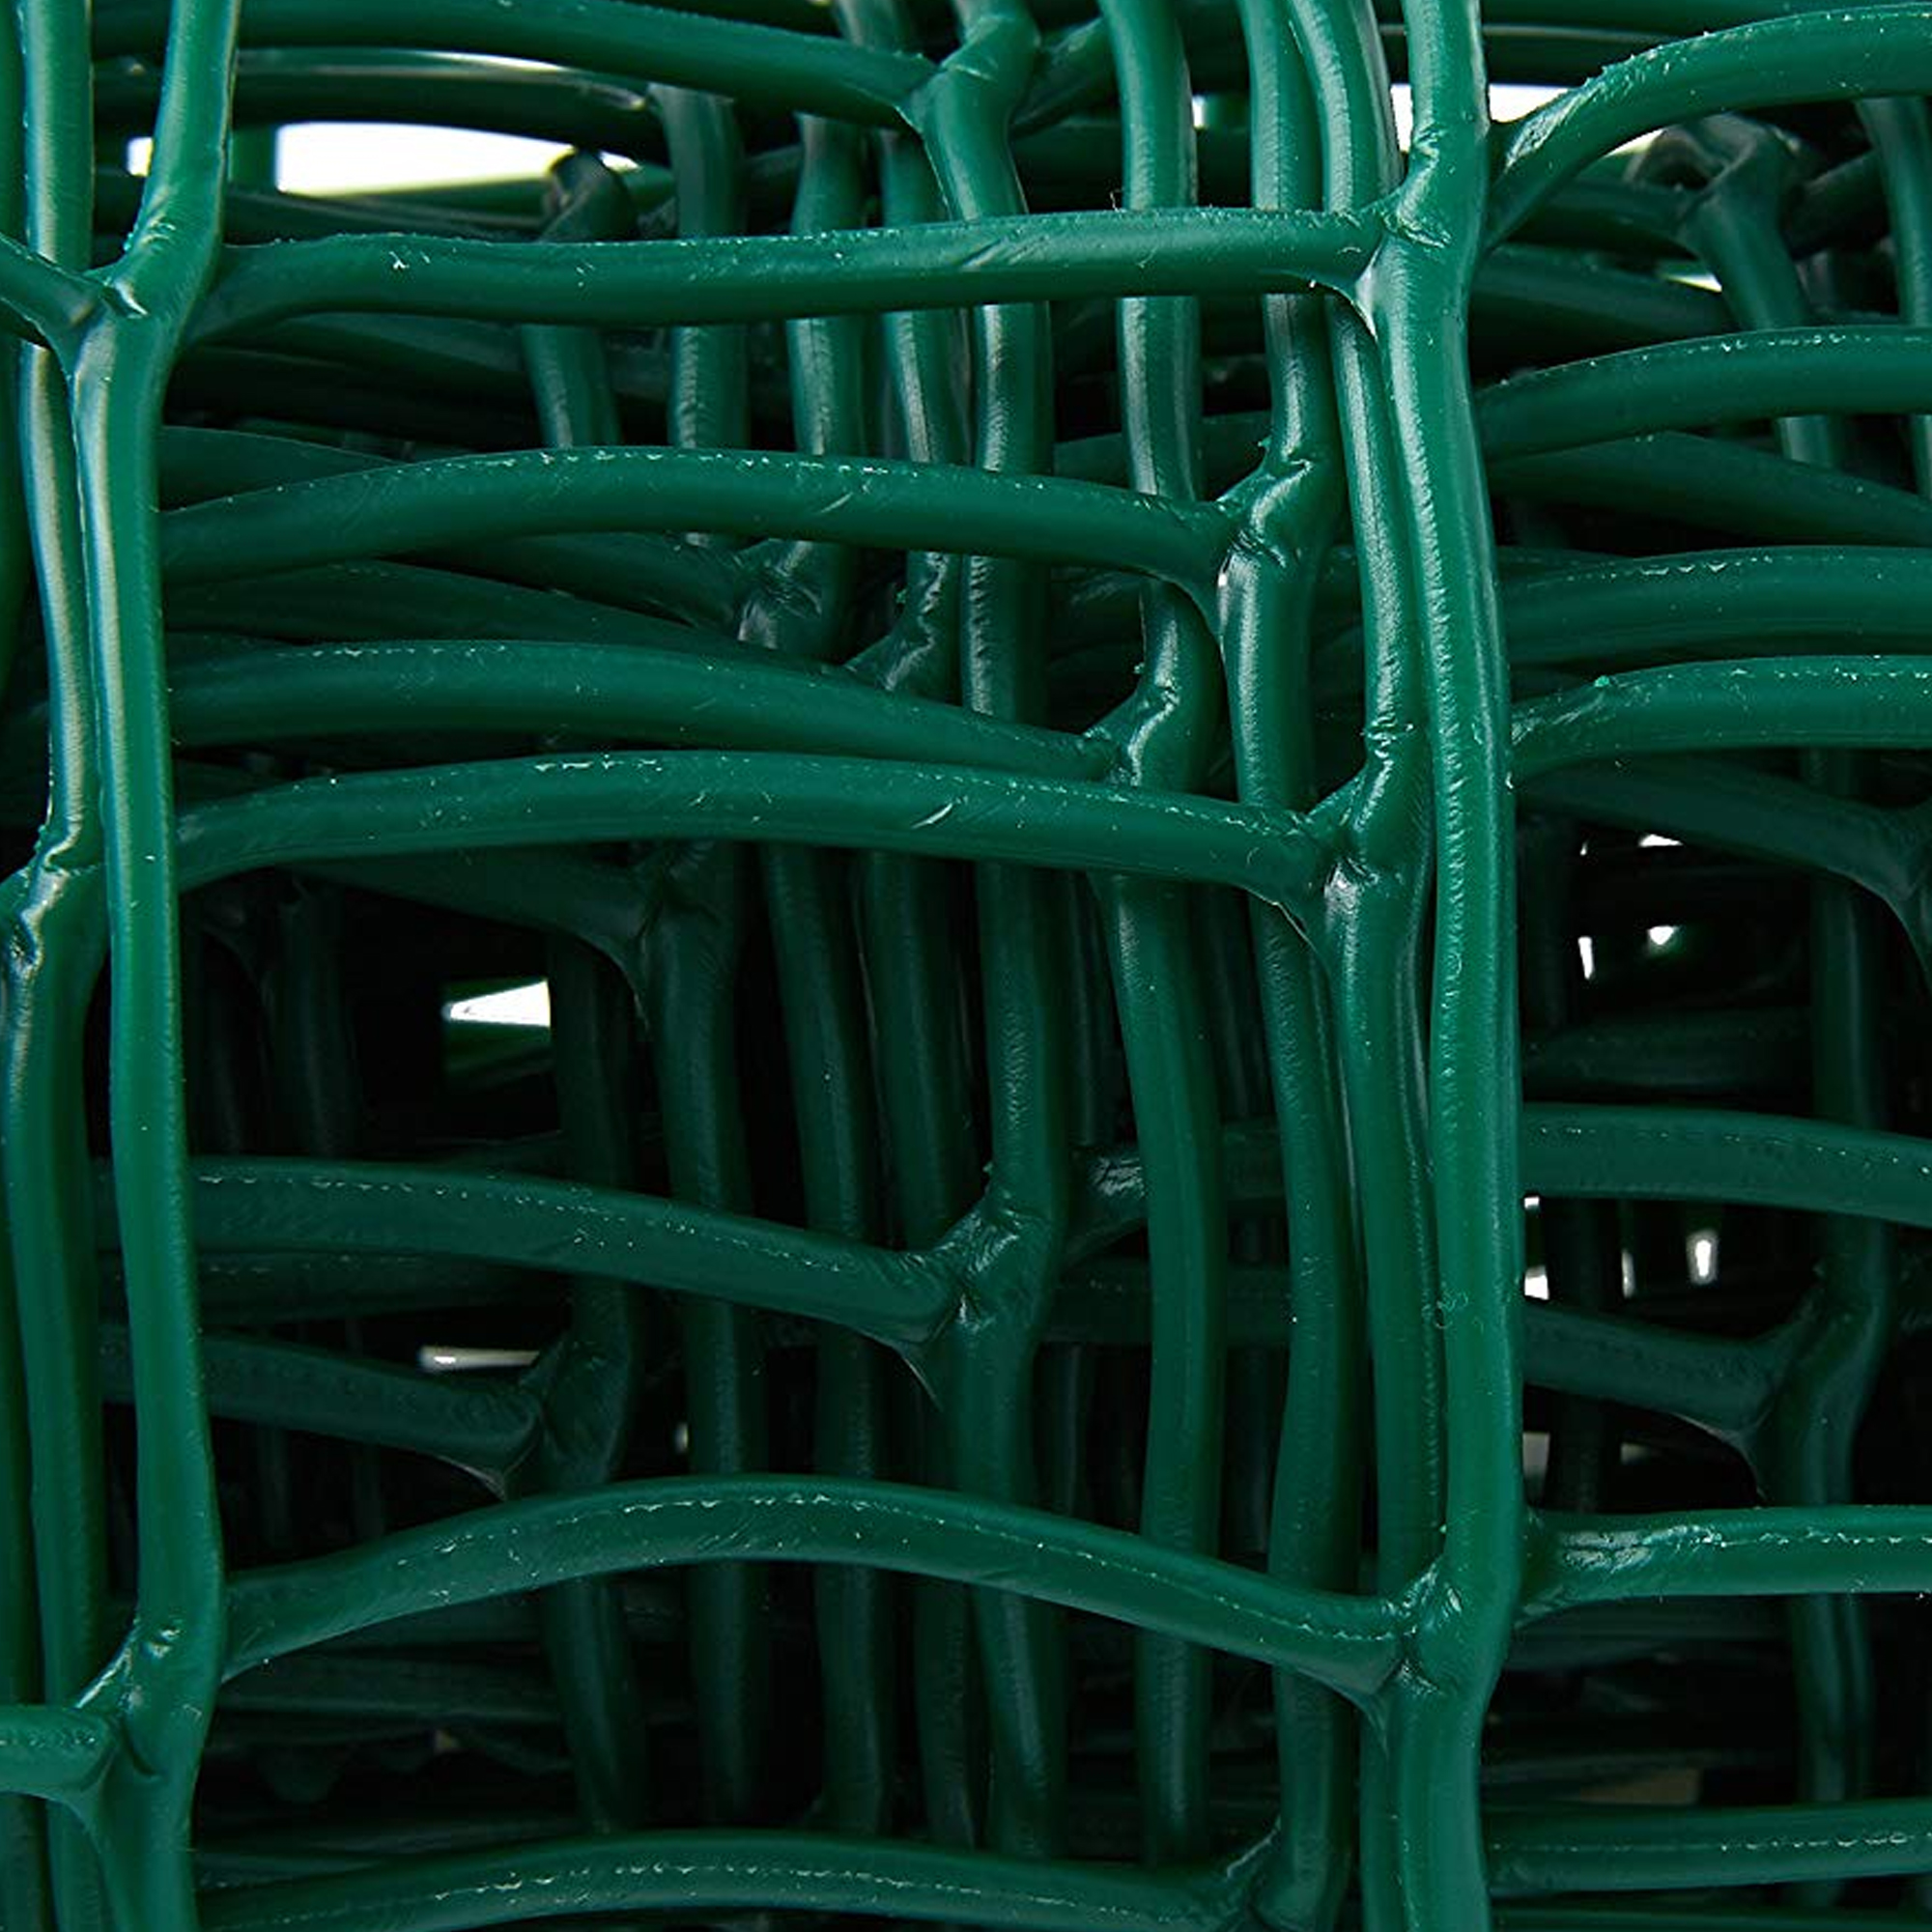 Green Plastic Coated Garden_zoom